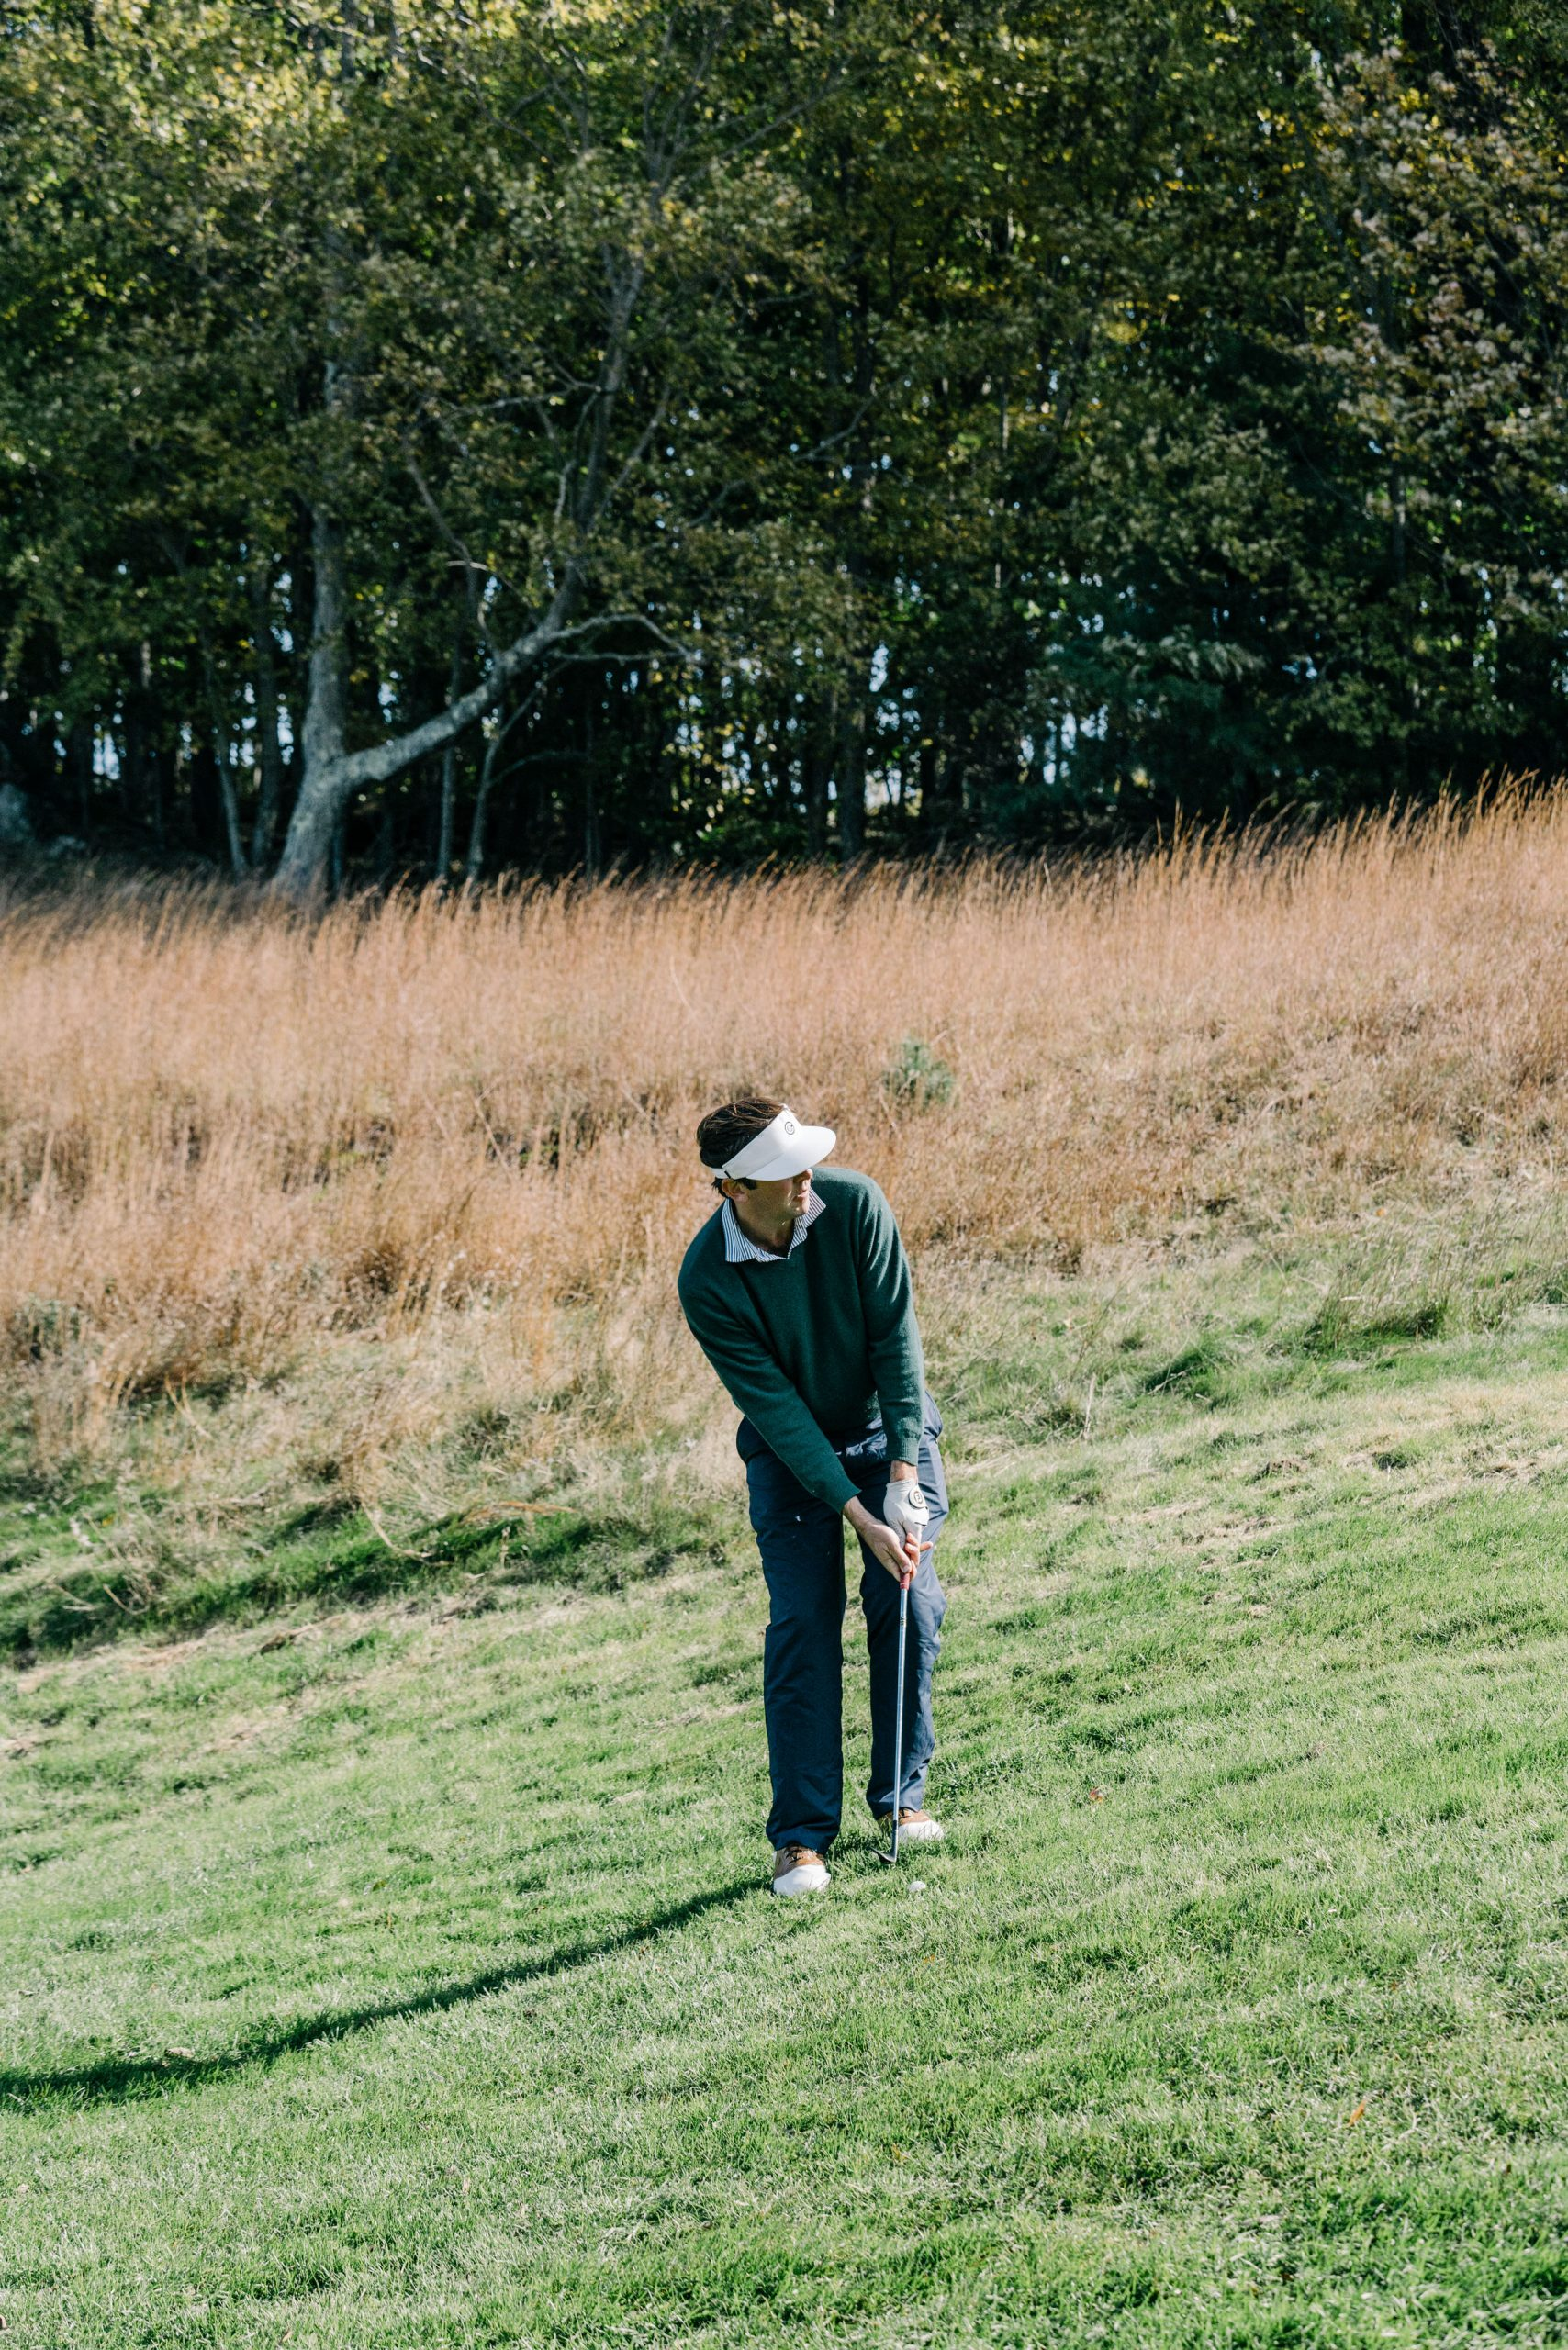 Colin Sheehan on the course at the Punchbowl at Yale